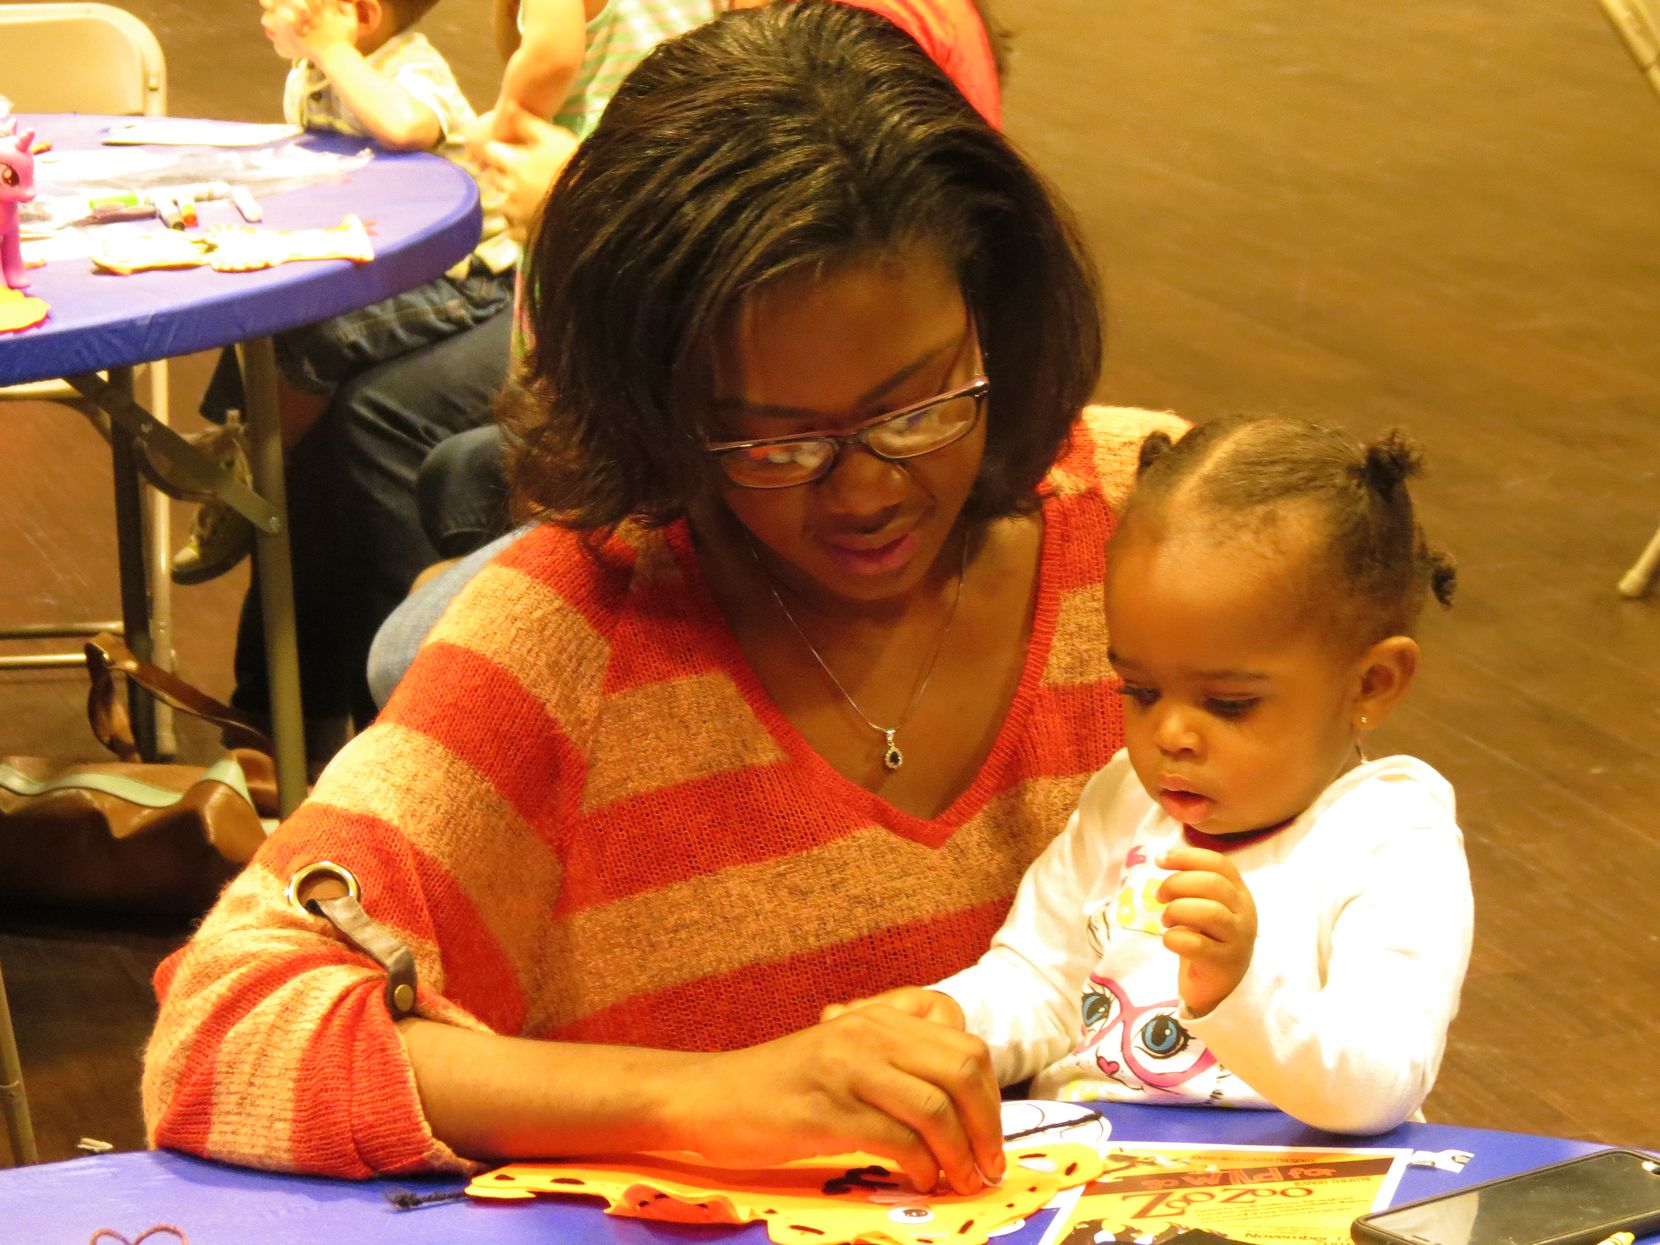 Irving Arts Center's Second Sunday Funday offers hands-on art activities for kids of all ages.